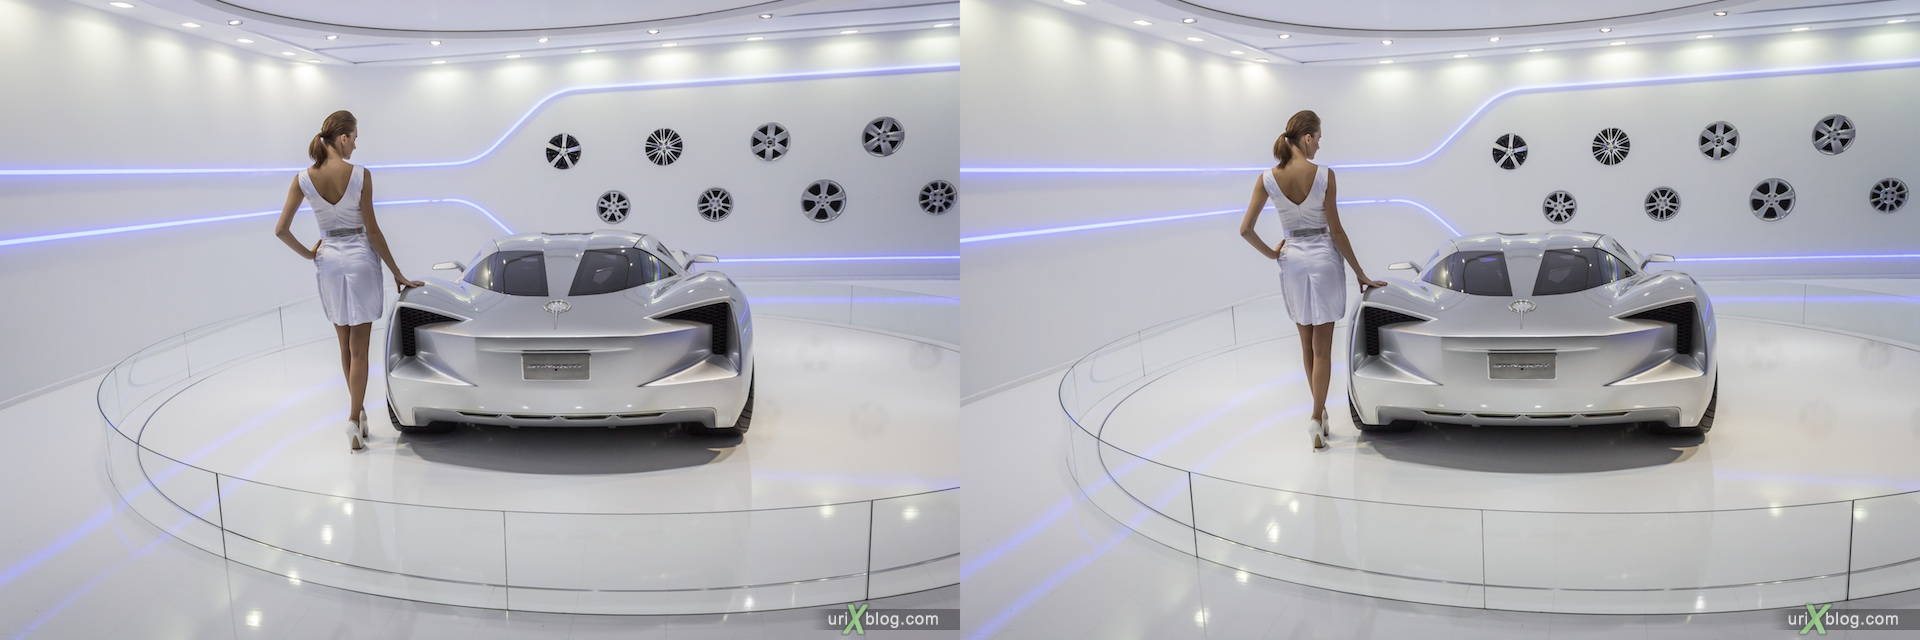 2012, Corvette Stingray, girl, model, Moscow International Automobile Salon, auto show, 3D, stereo pair, cross-eyed, crossview